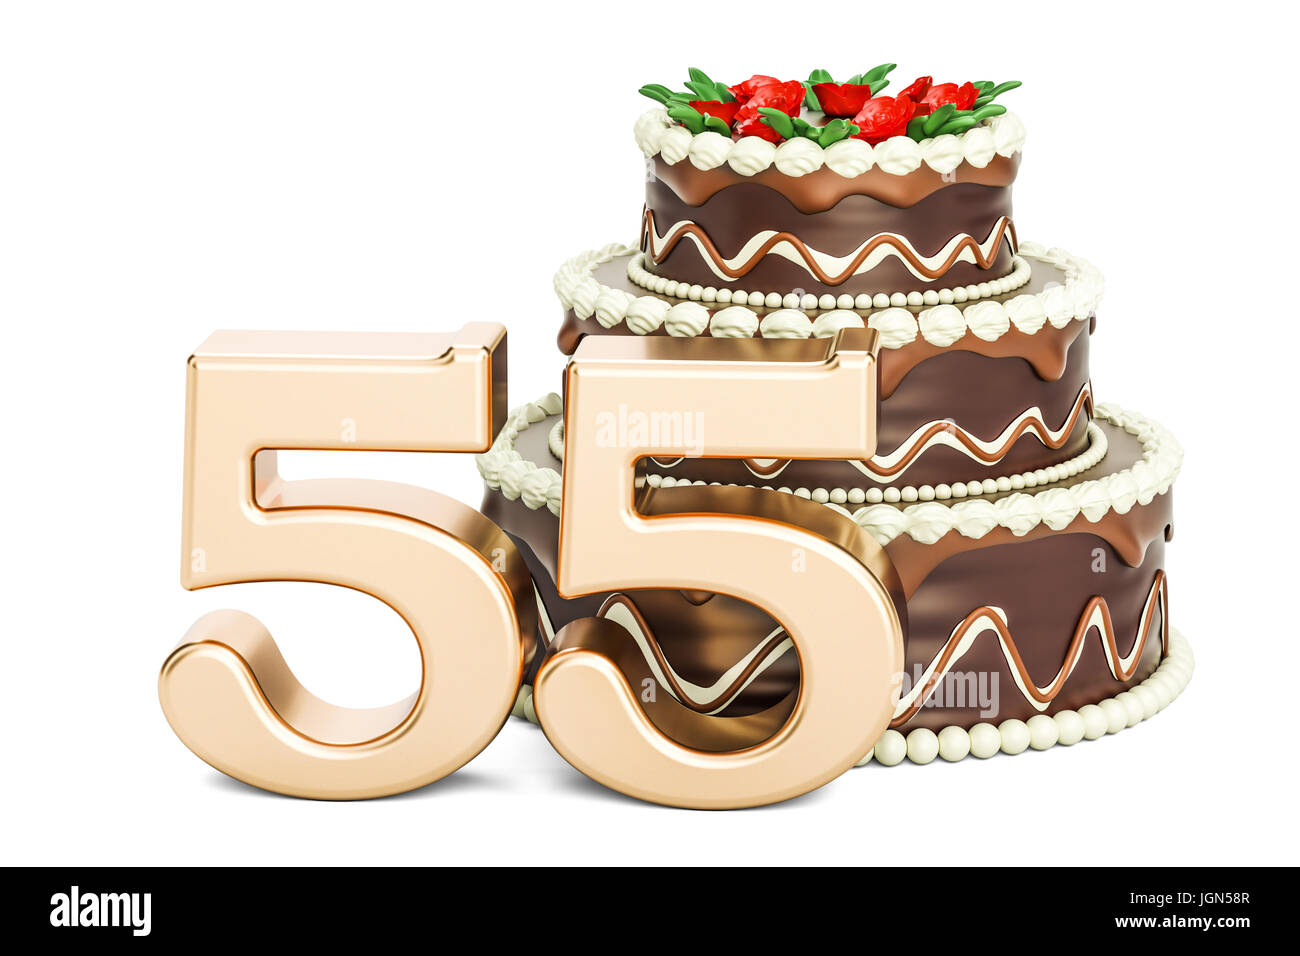 Tremendous Chocolate Birthday Cake With Golden Number 55 3D Rendering Funny Birthday Cards Online Inifofree Goldxyz